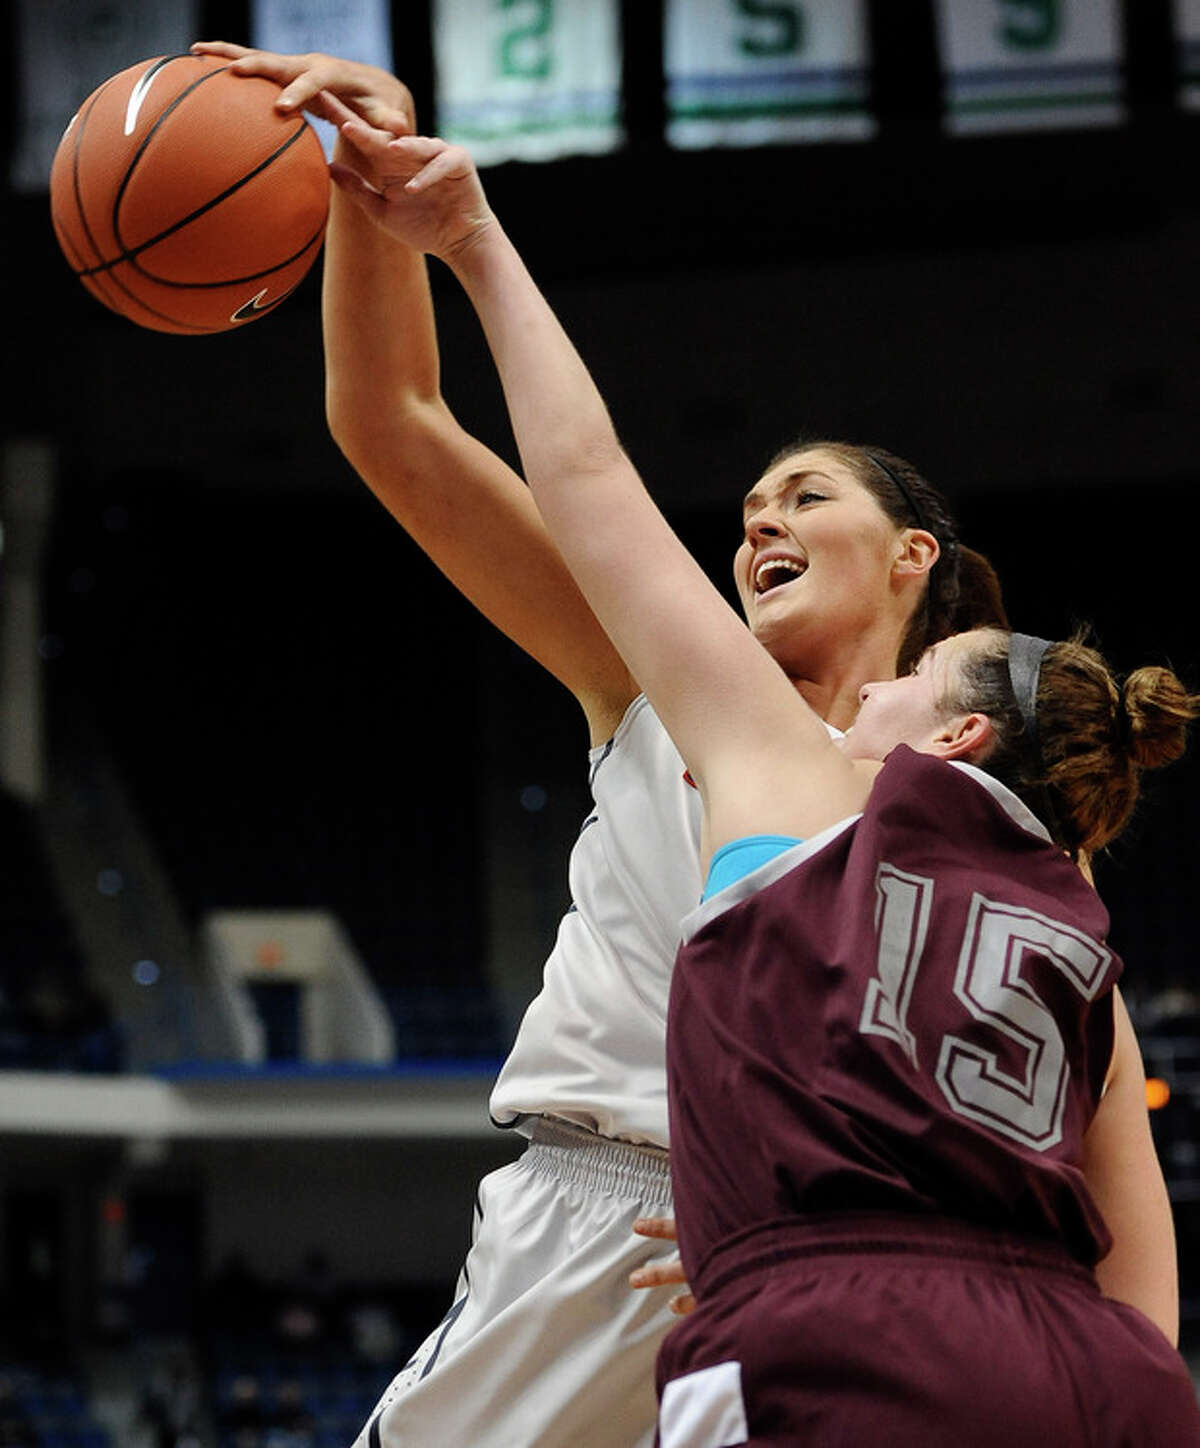 Connecticut's Stefanie Dolson, left, and Philadelphia's Tori Arnao, right, lookfor control of the ball during the first half of an NCAA college exhibition basketball game, Tuesday, Nov. 5, 2013, in Hartford, Conn. (AP Photo/Jessica Hill)